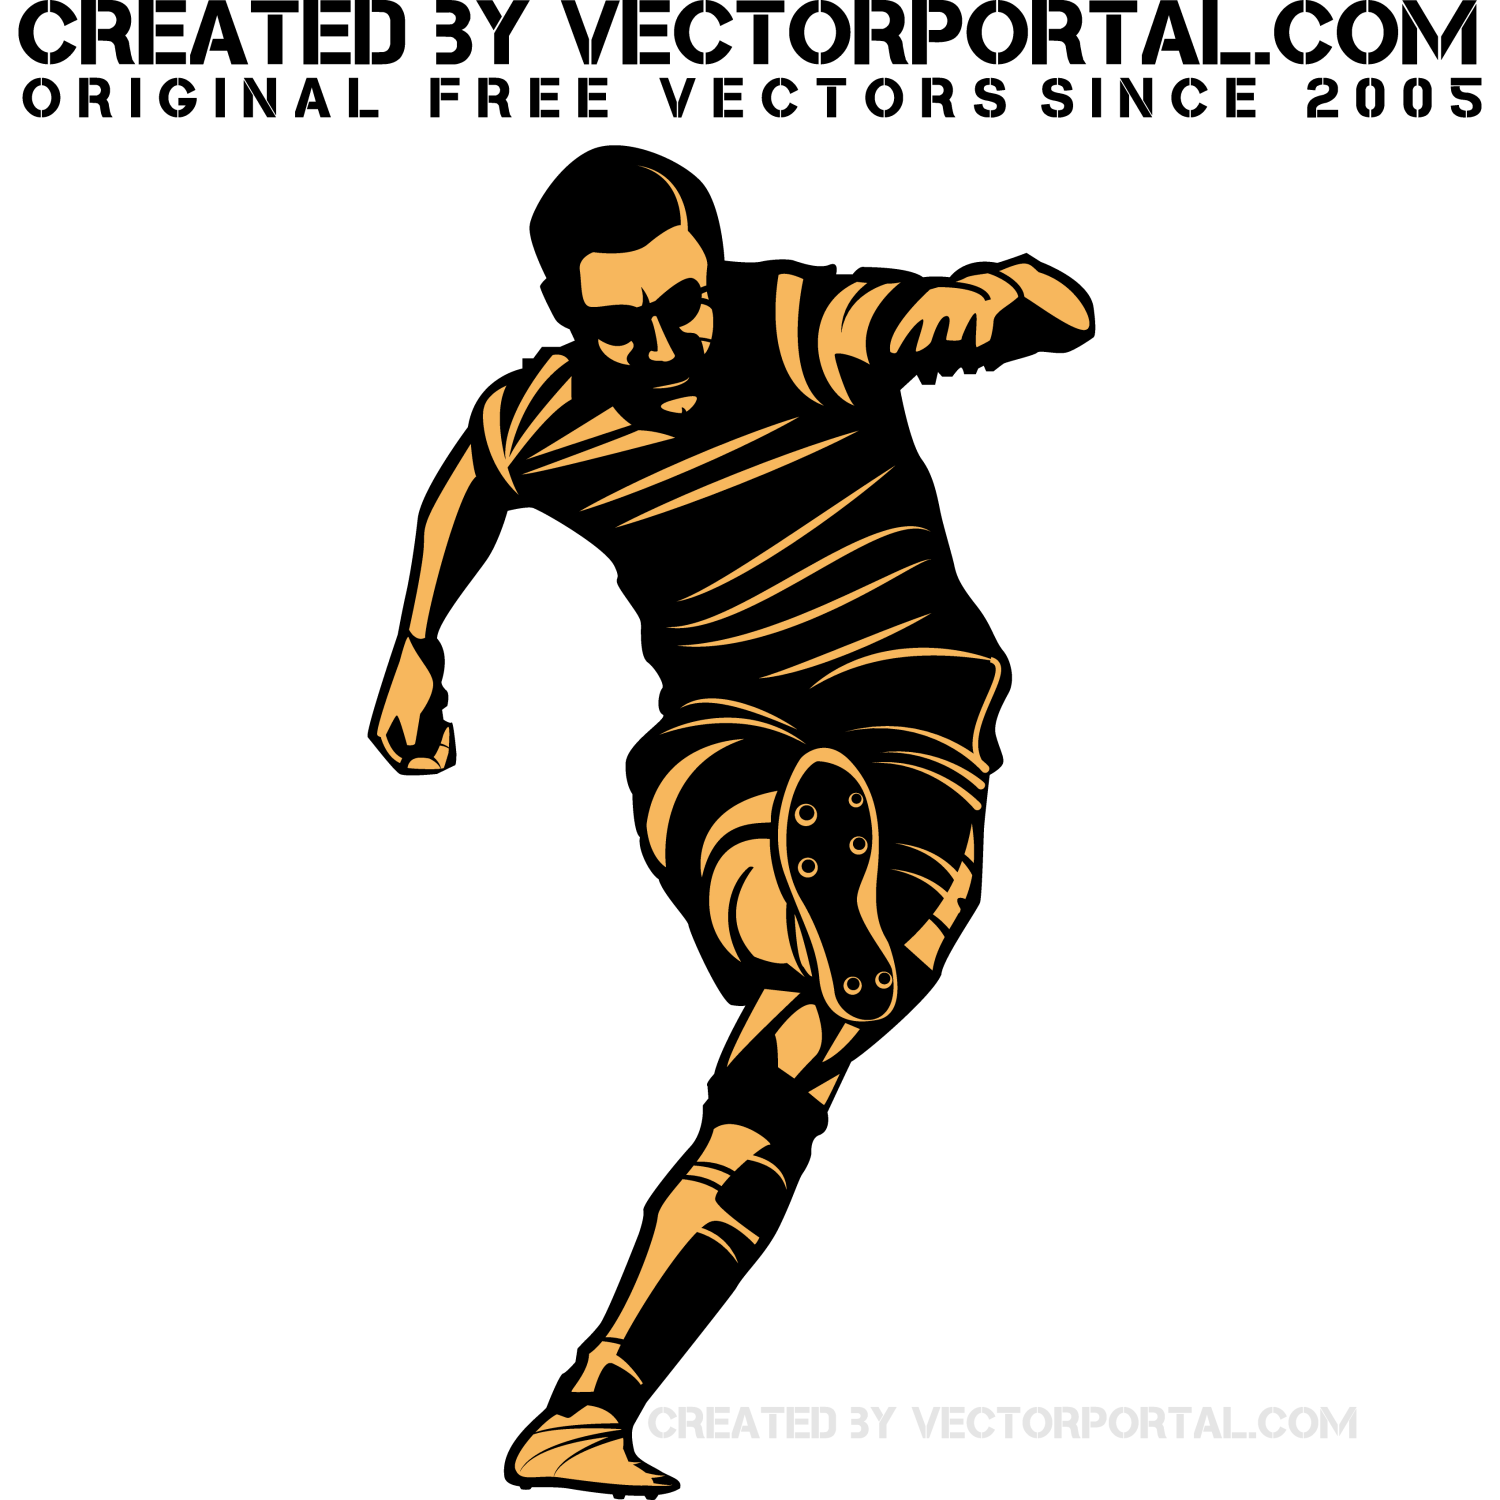 Vector illustration of a soccer player